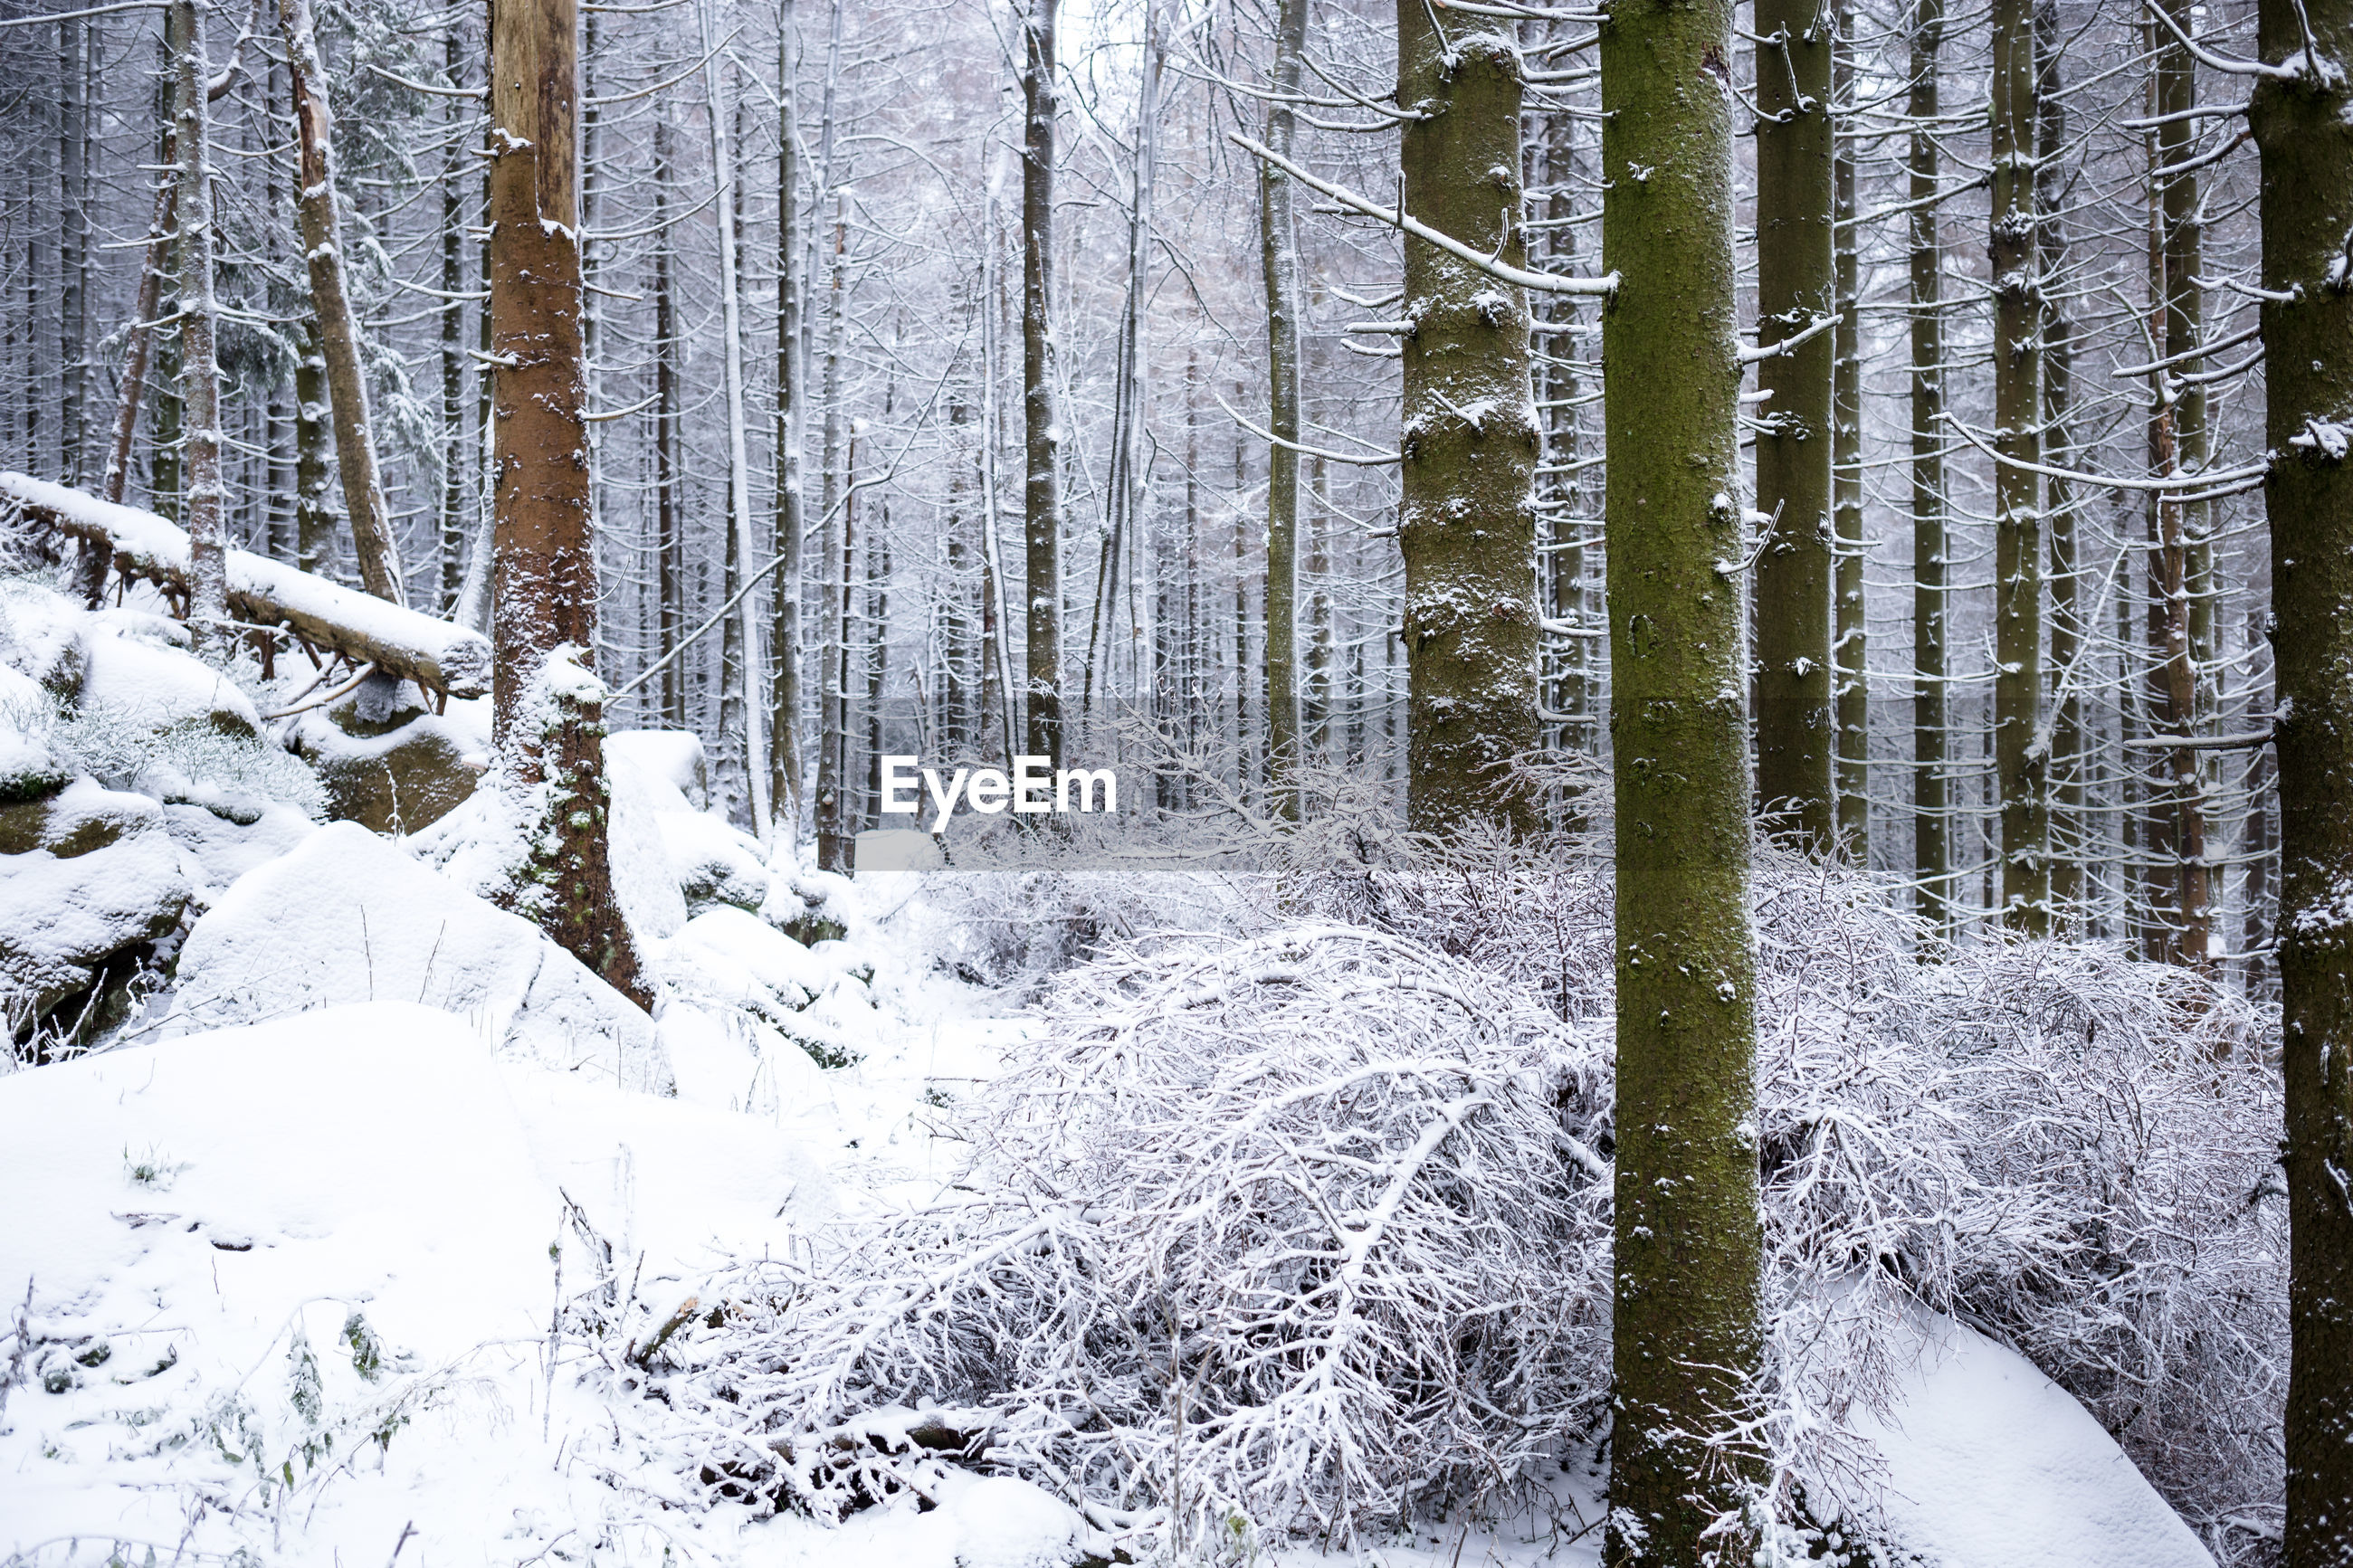 VIEW OF TREES IN SNOW